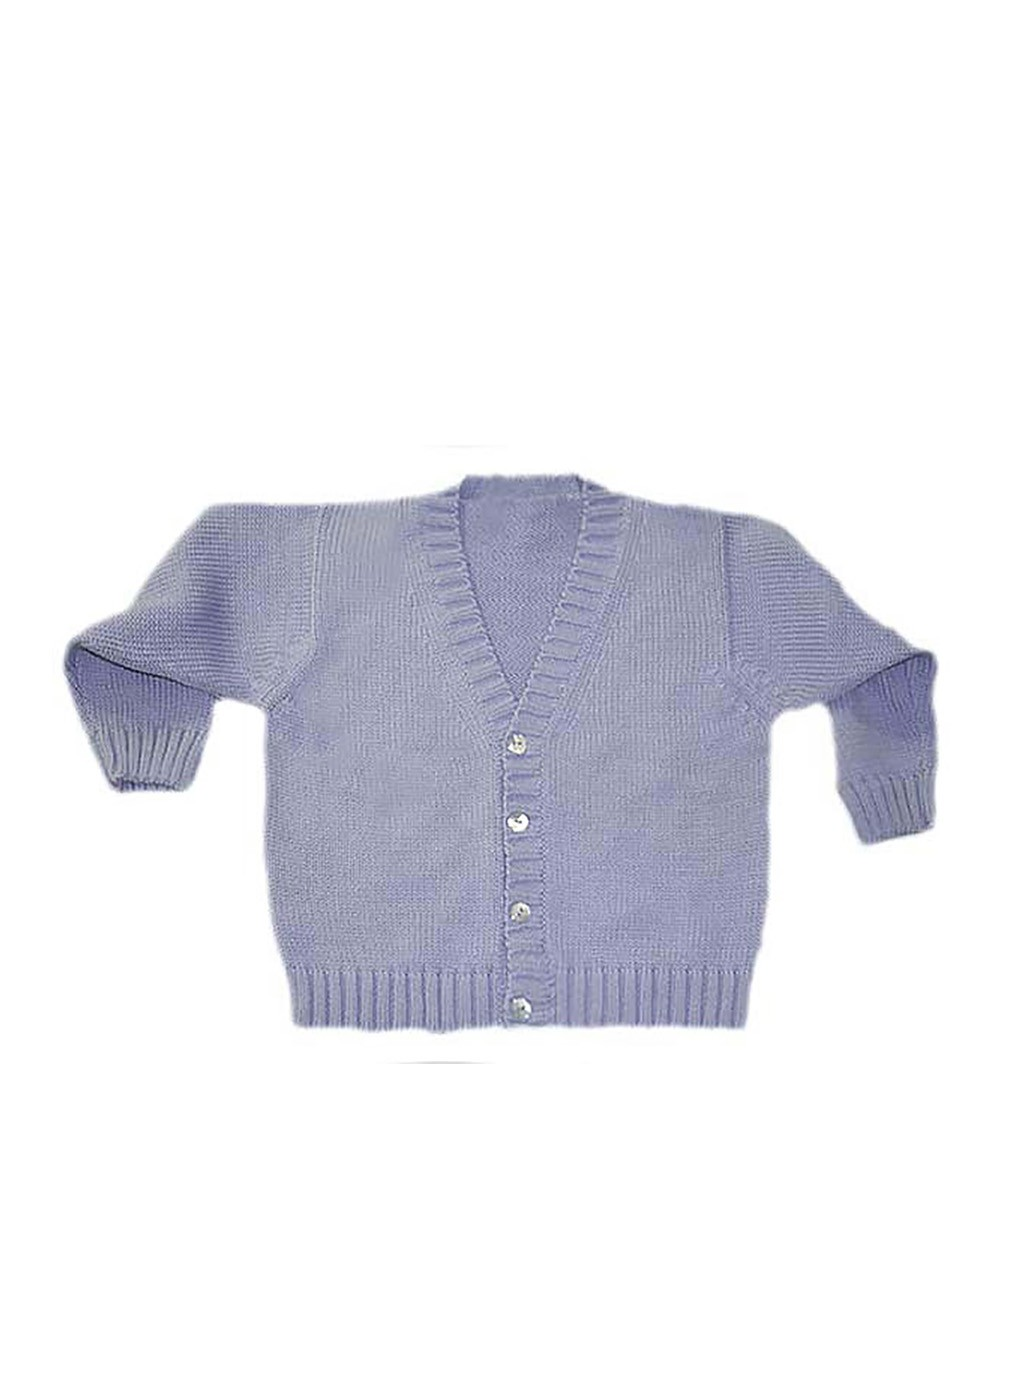 Cardigan 100% cotton